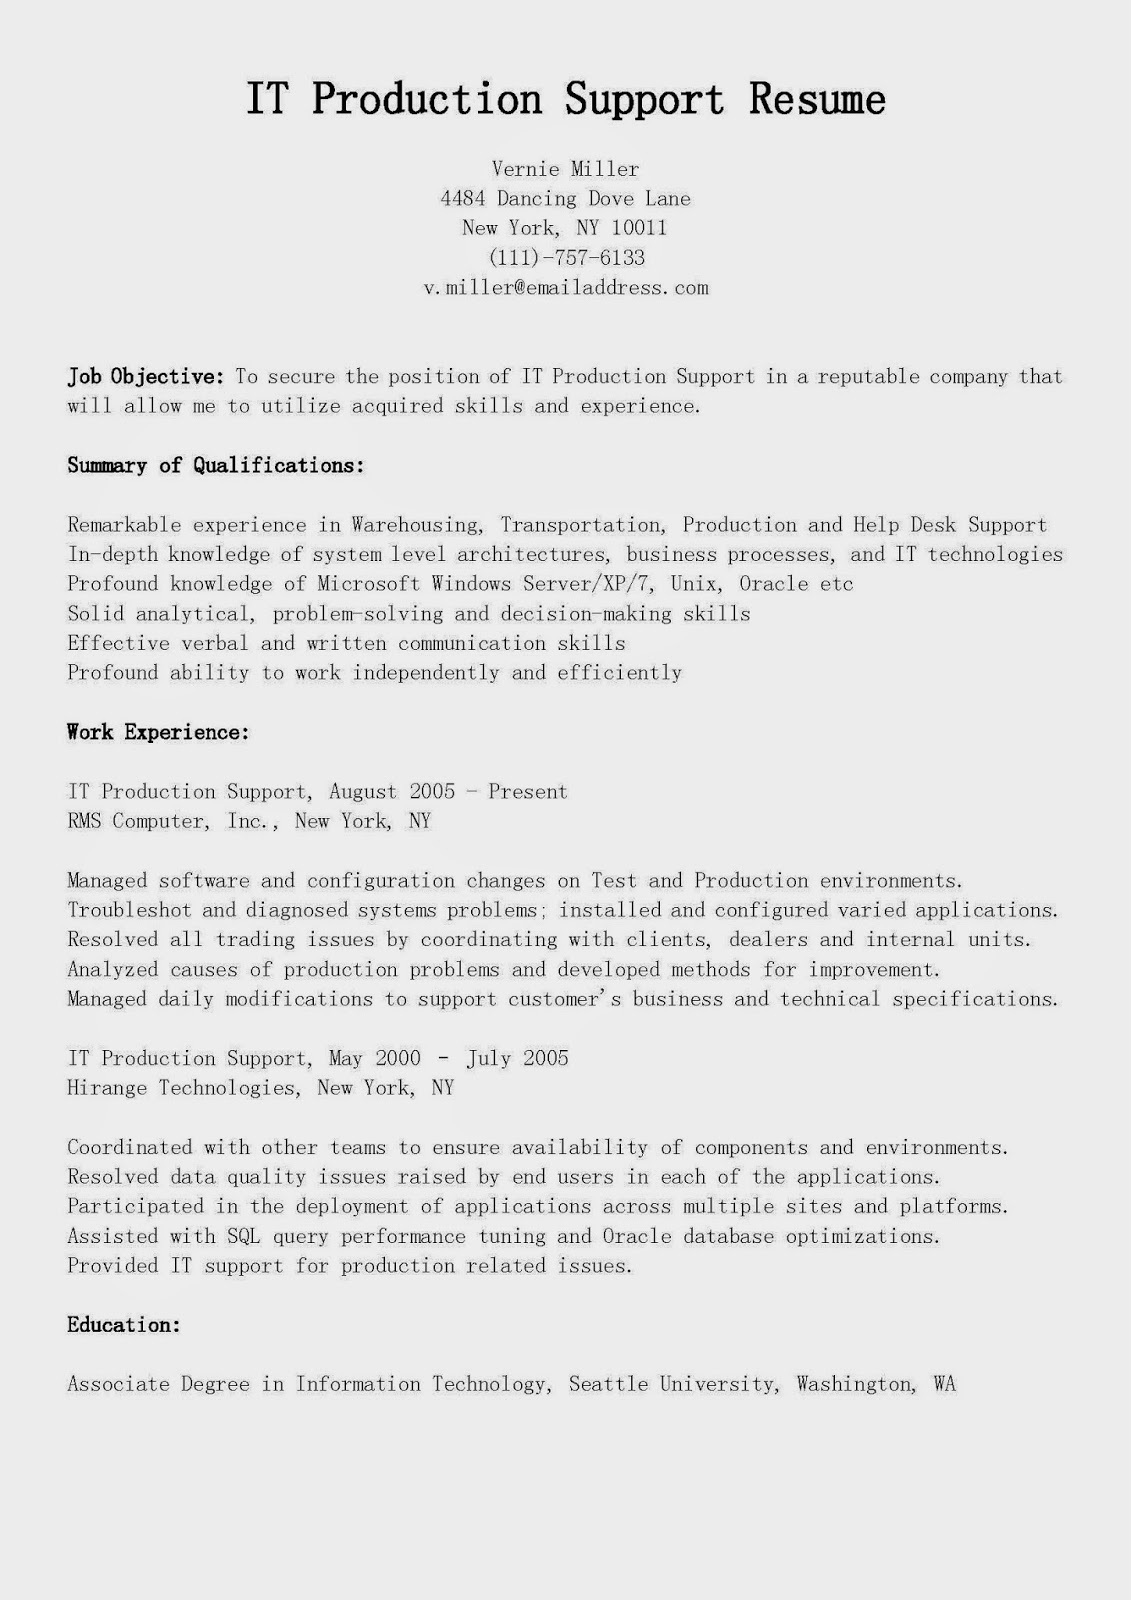 Mainframe Production Support Cover Letter | Remote Desktop Support ...